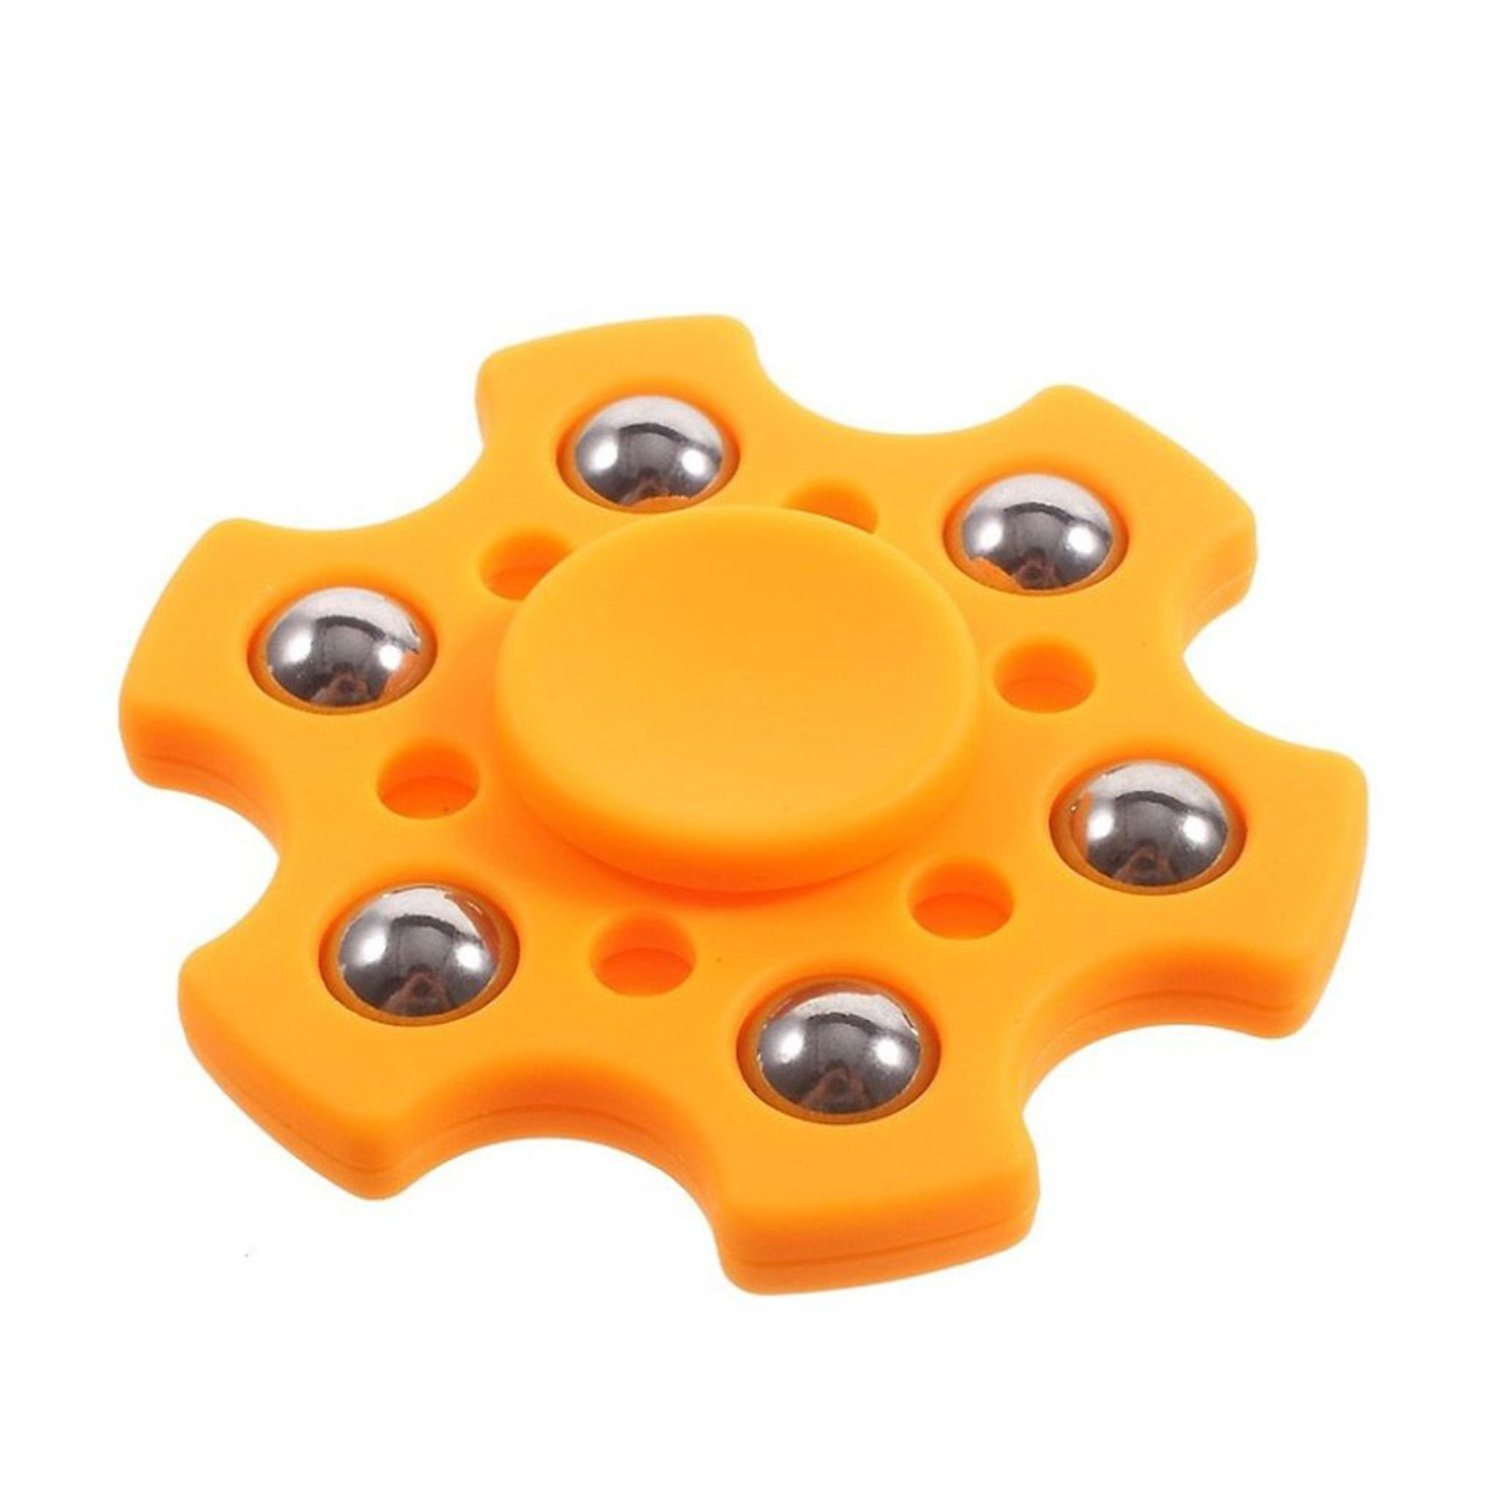 Fidget spinner med metall kulor - Orange